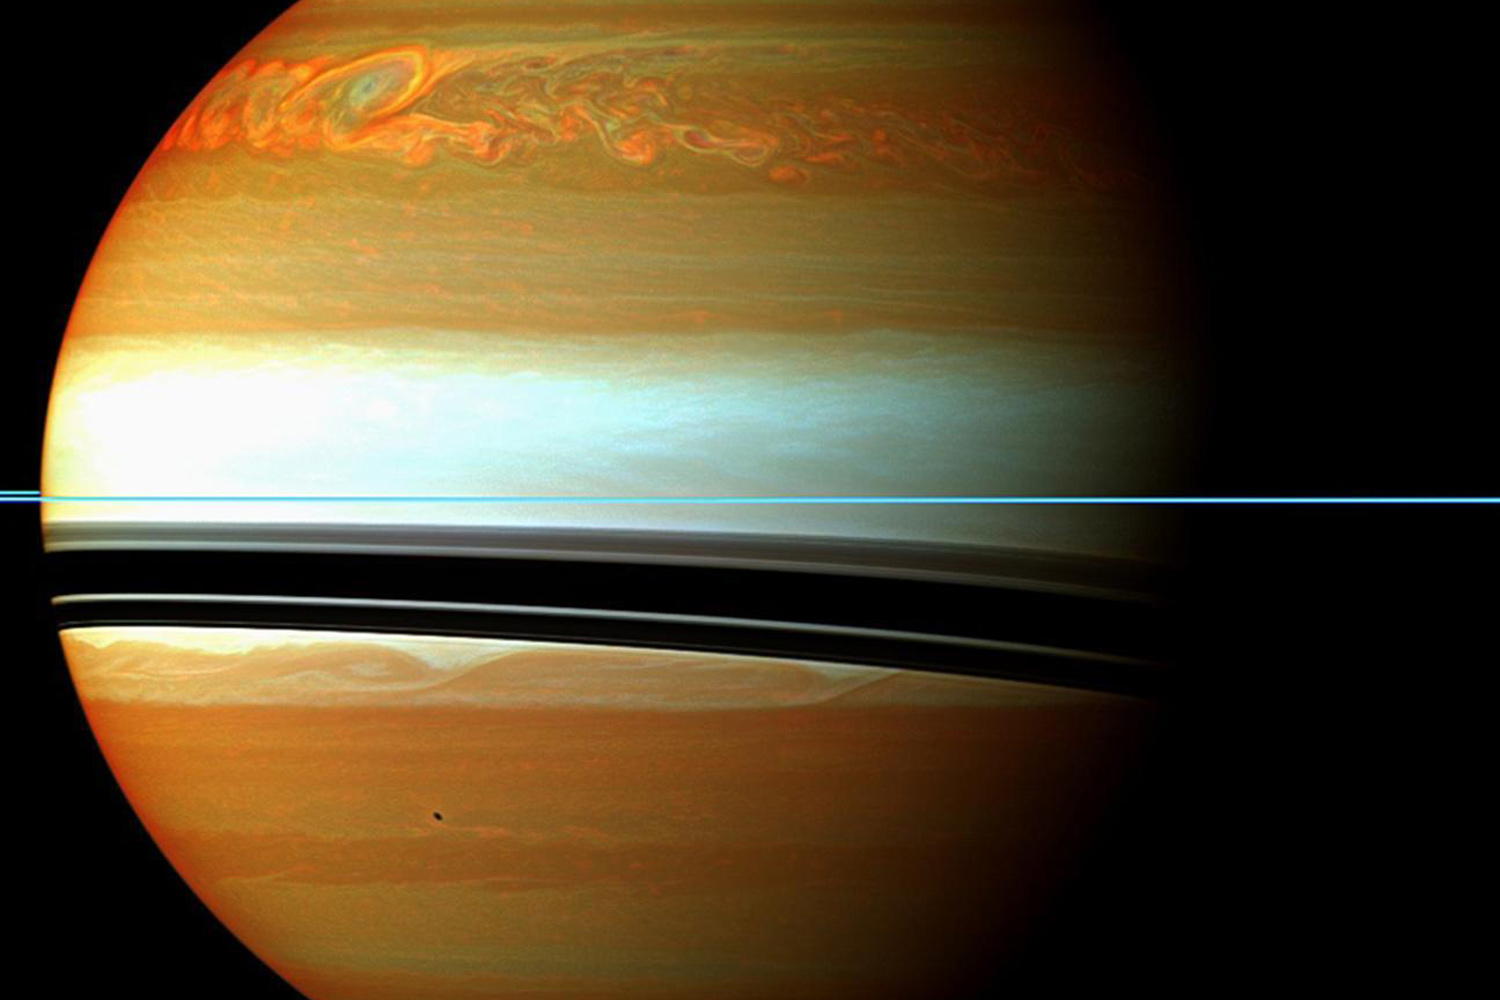 January 12, 2011. A false-color mosaic showing the tail of Saturn's huge northern storm. Red and orange colors in this view indicate clouds that were deep in the atmosphere.